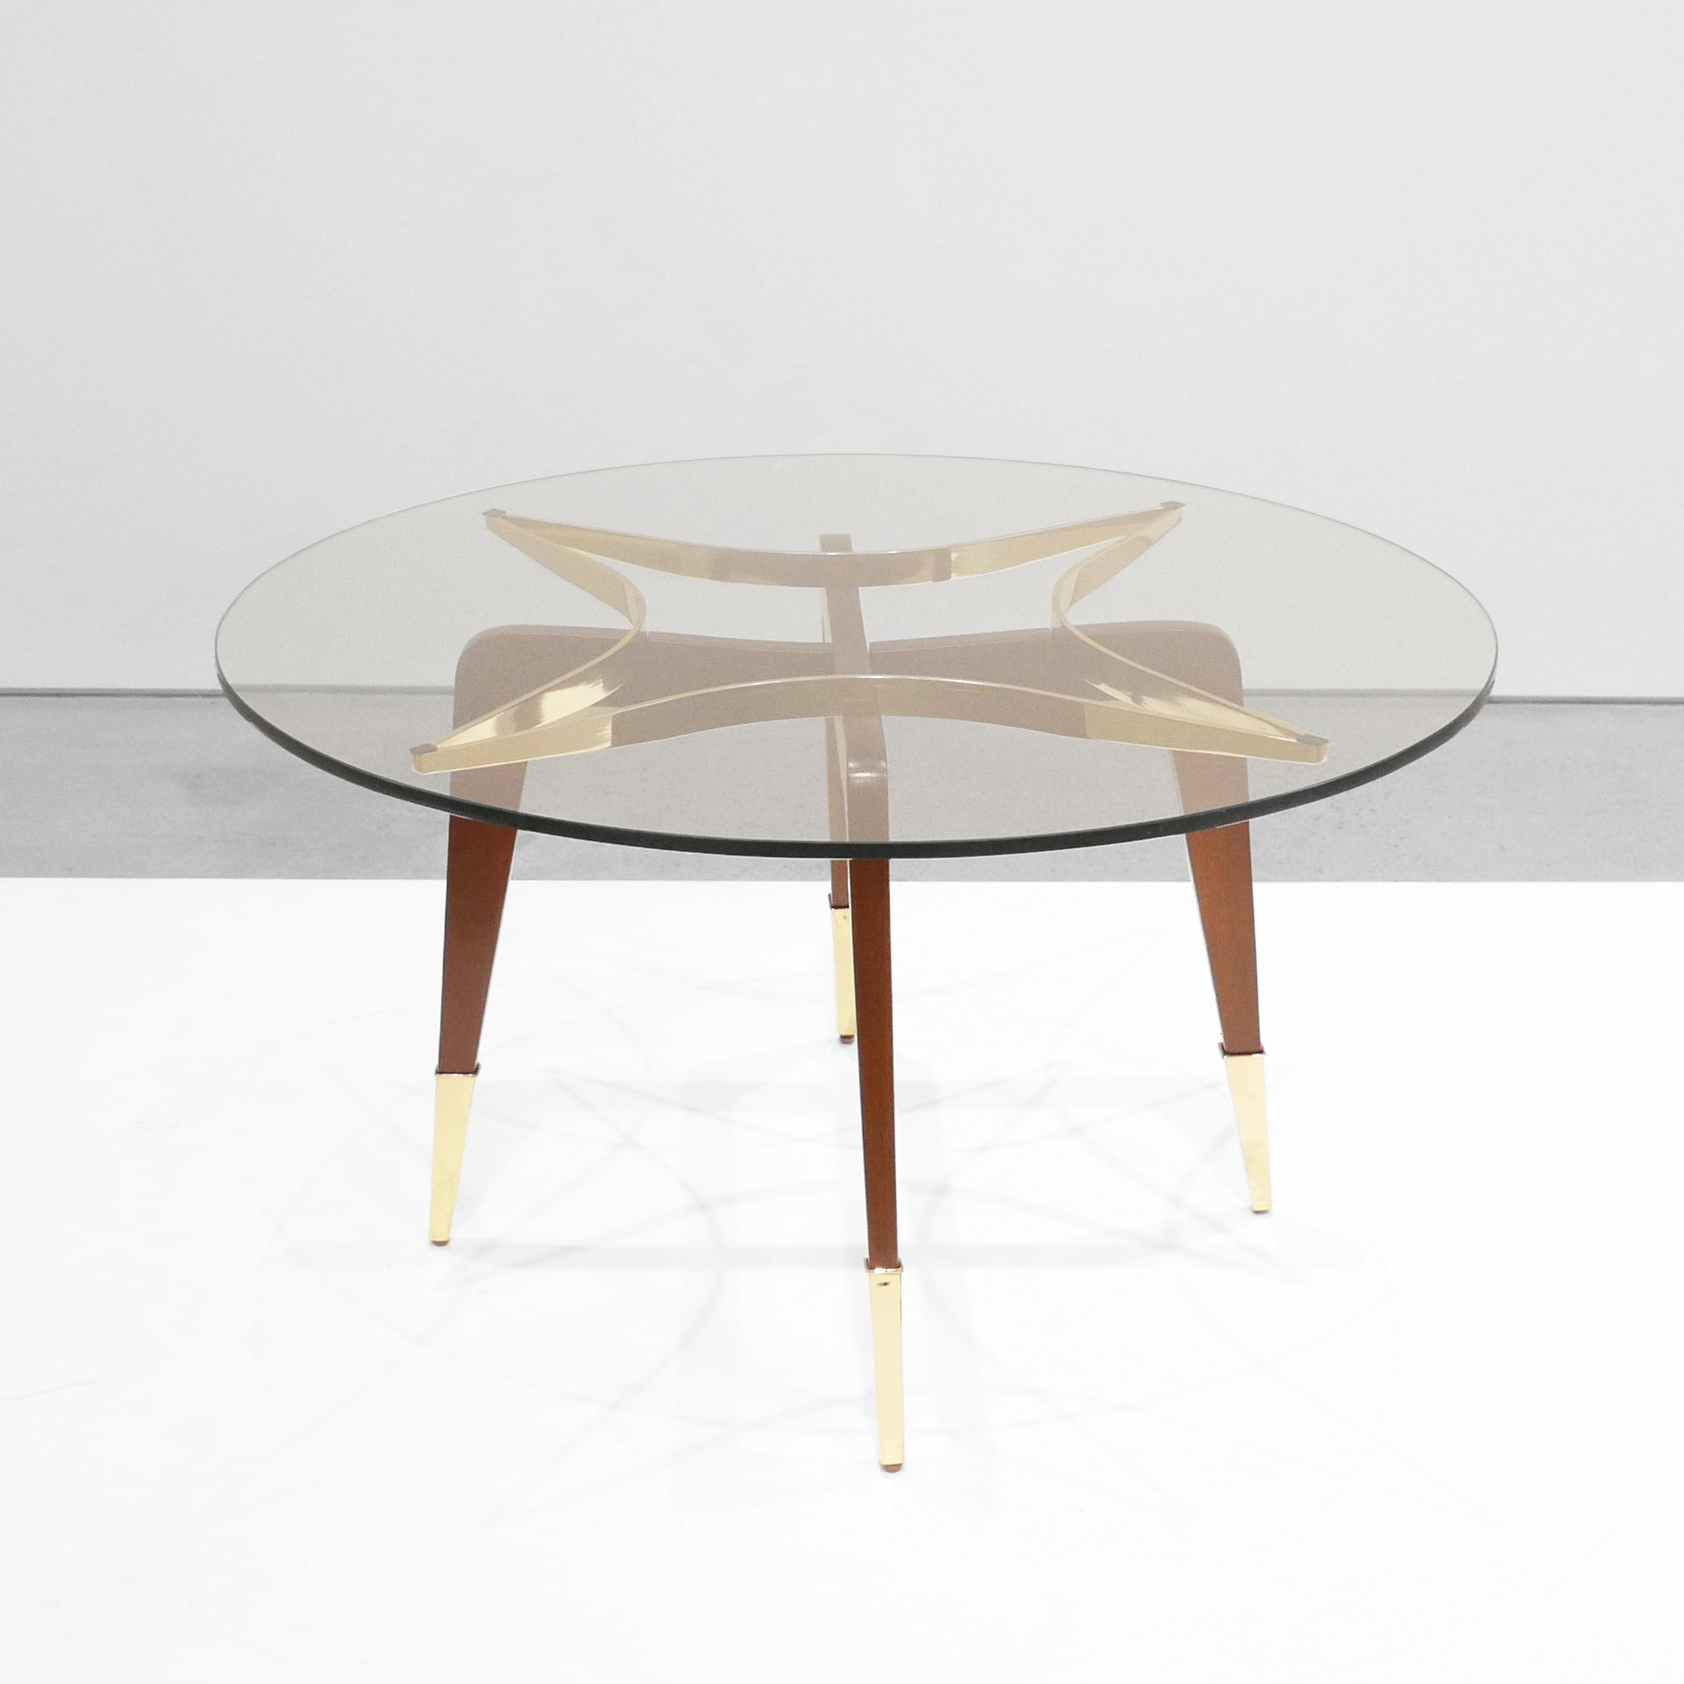 paolo buffa ATTRIB.  mid-century coffee table  c. 1950 - 1959 SOLD